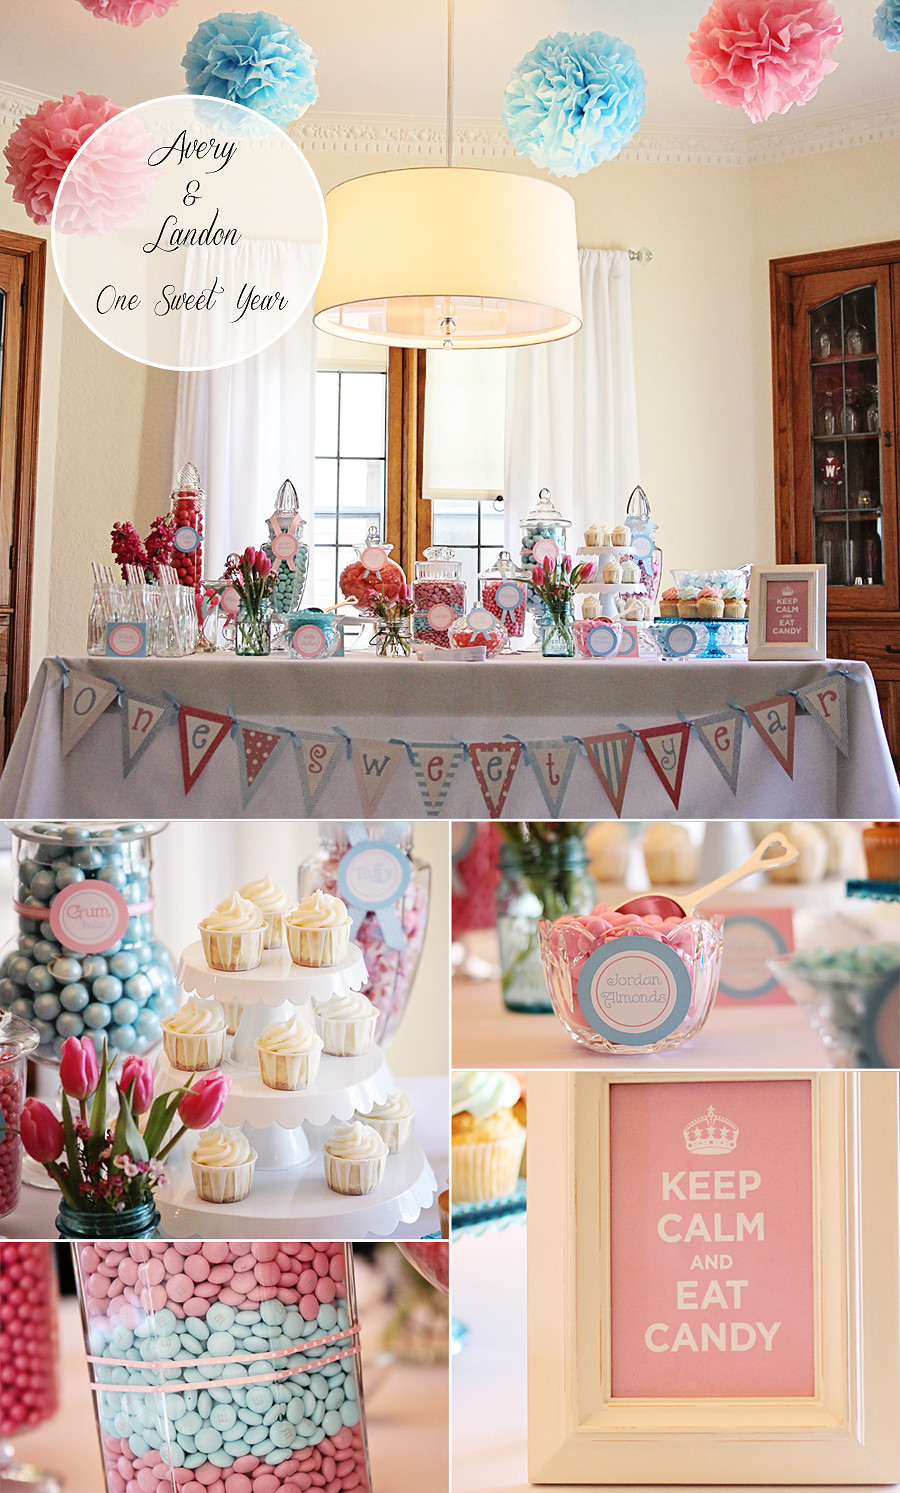 Best ideas about Birthday Party Photography . Save or Pin Avery & Landon Now.